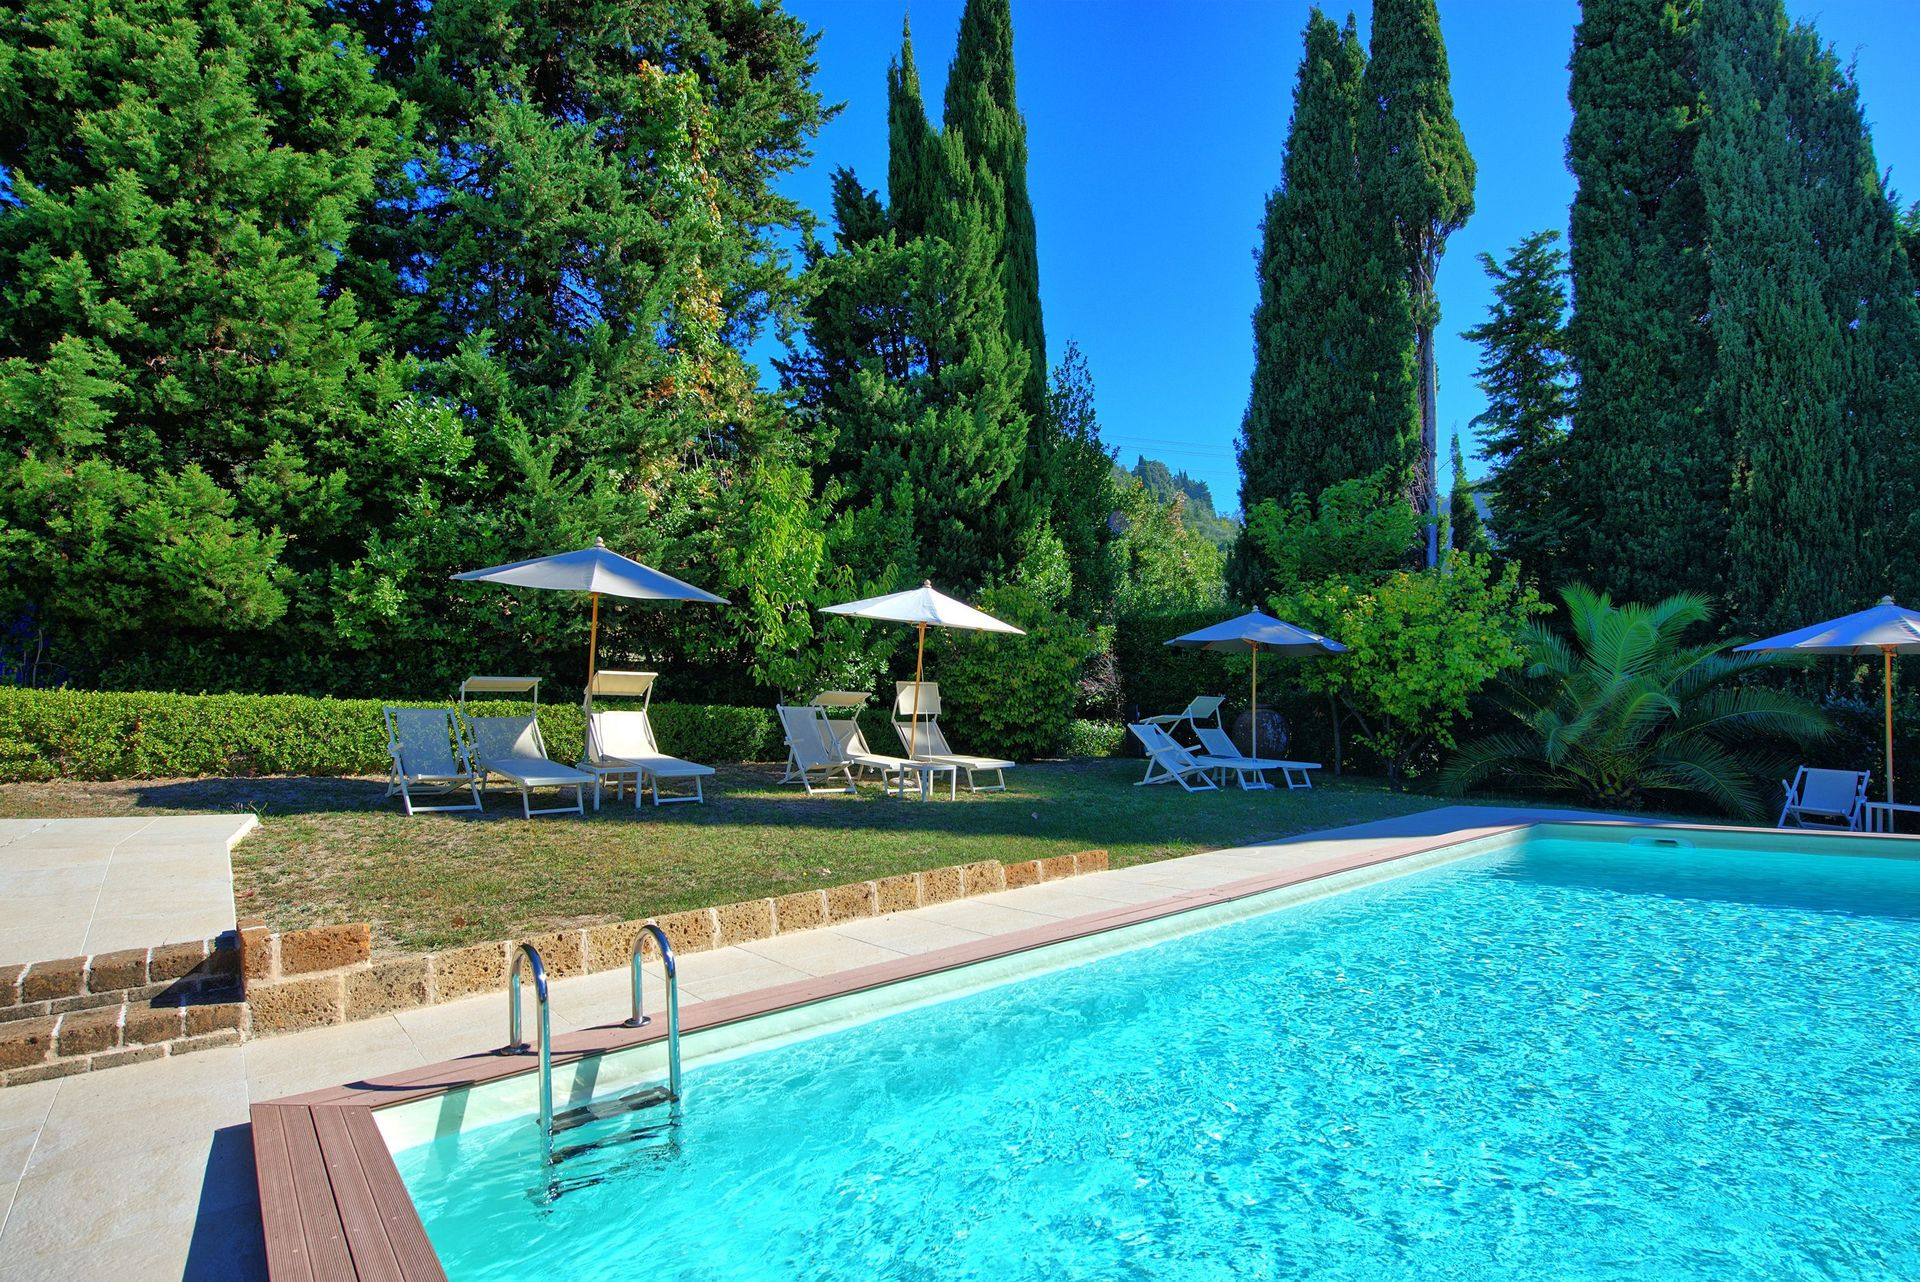 Jacuzzi Pool Was Ist Das Camaiore Villa Vacation Rental Villa Camaiore That Sleeps 15